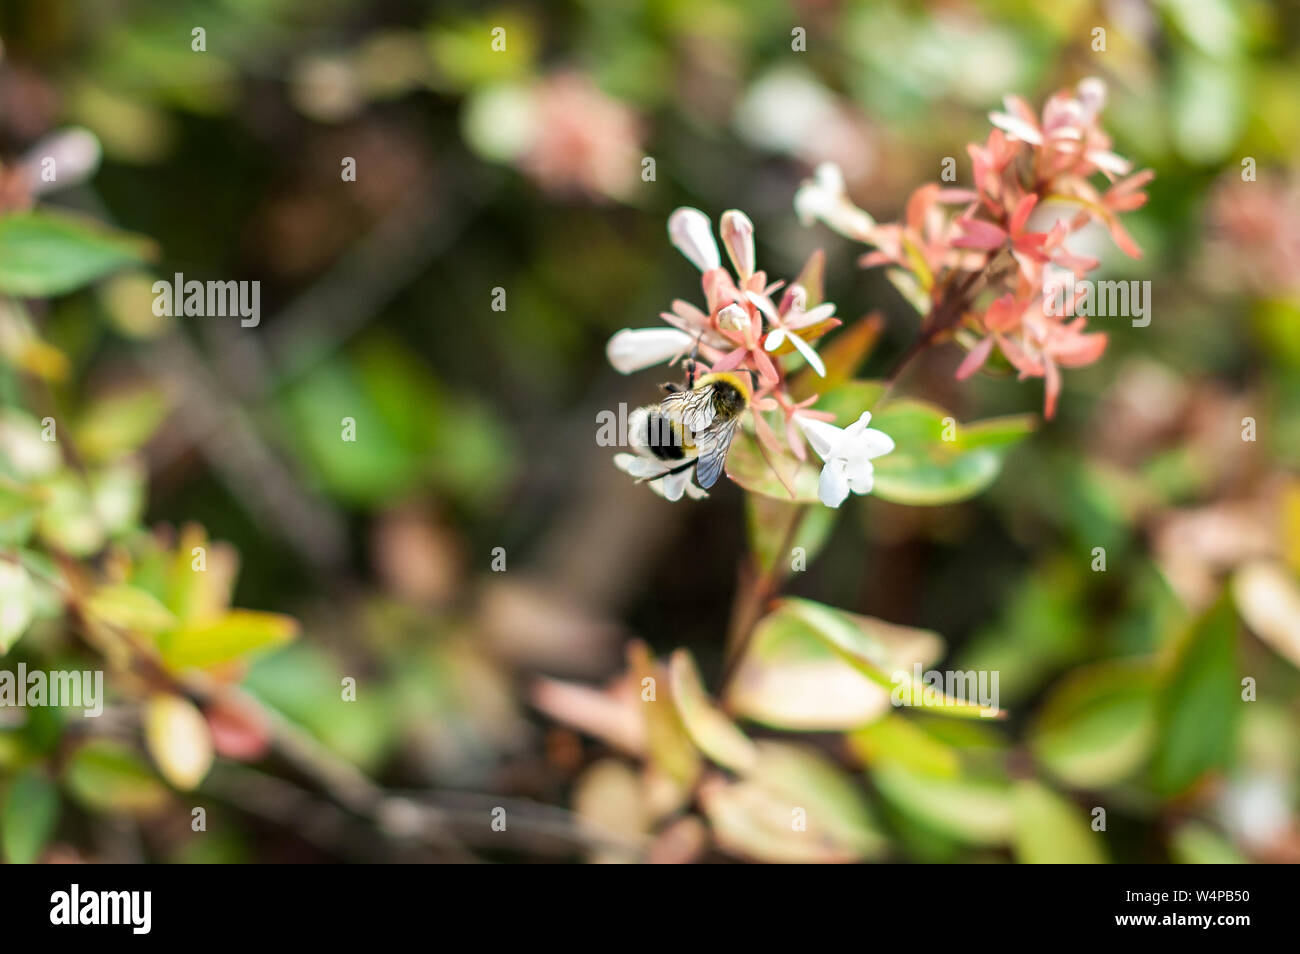 Honey bee pollinating flower or collecting pollen on blooming bush in italian park. Soft focus and blurred floral background. Close-up. Stock Photo